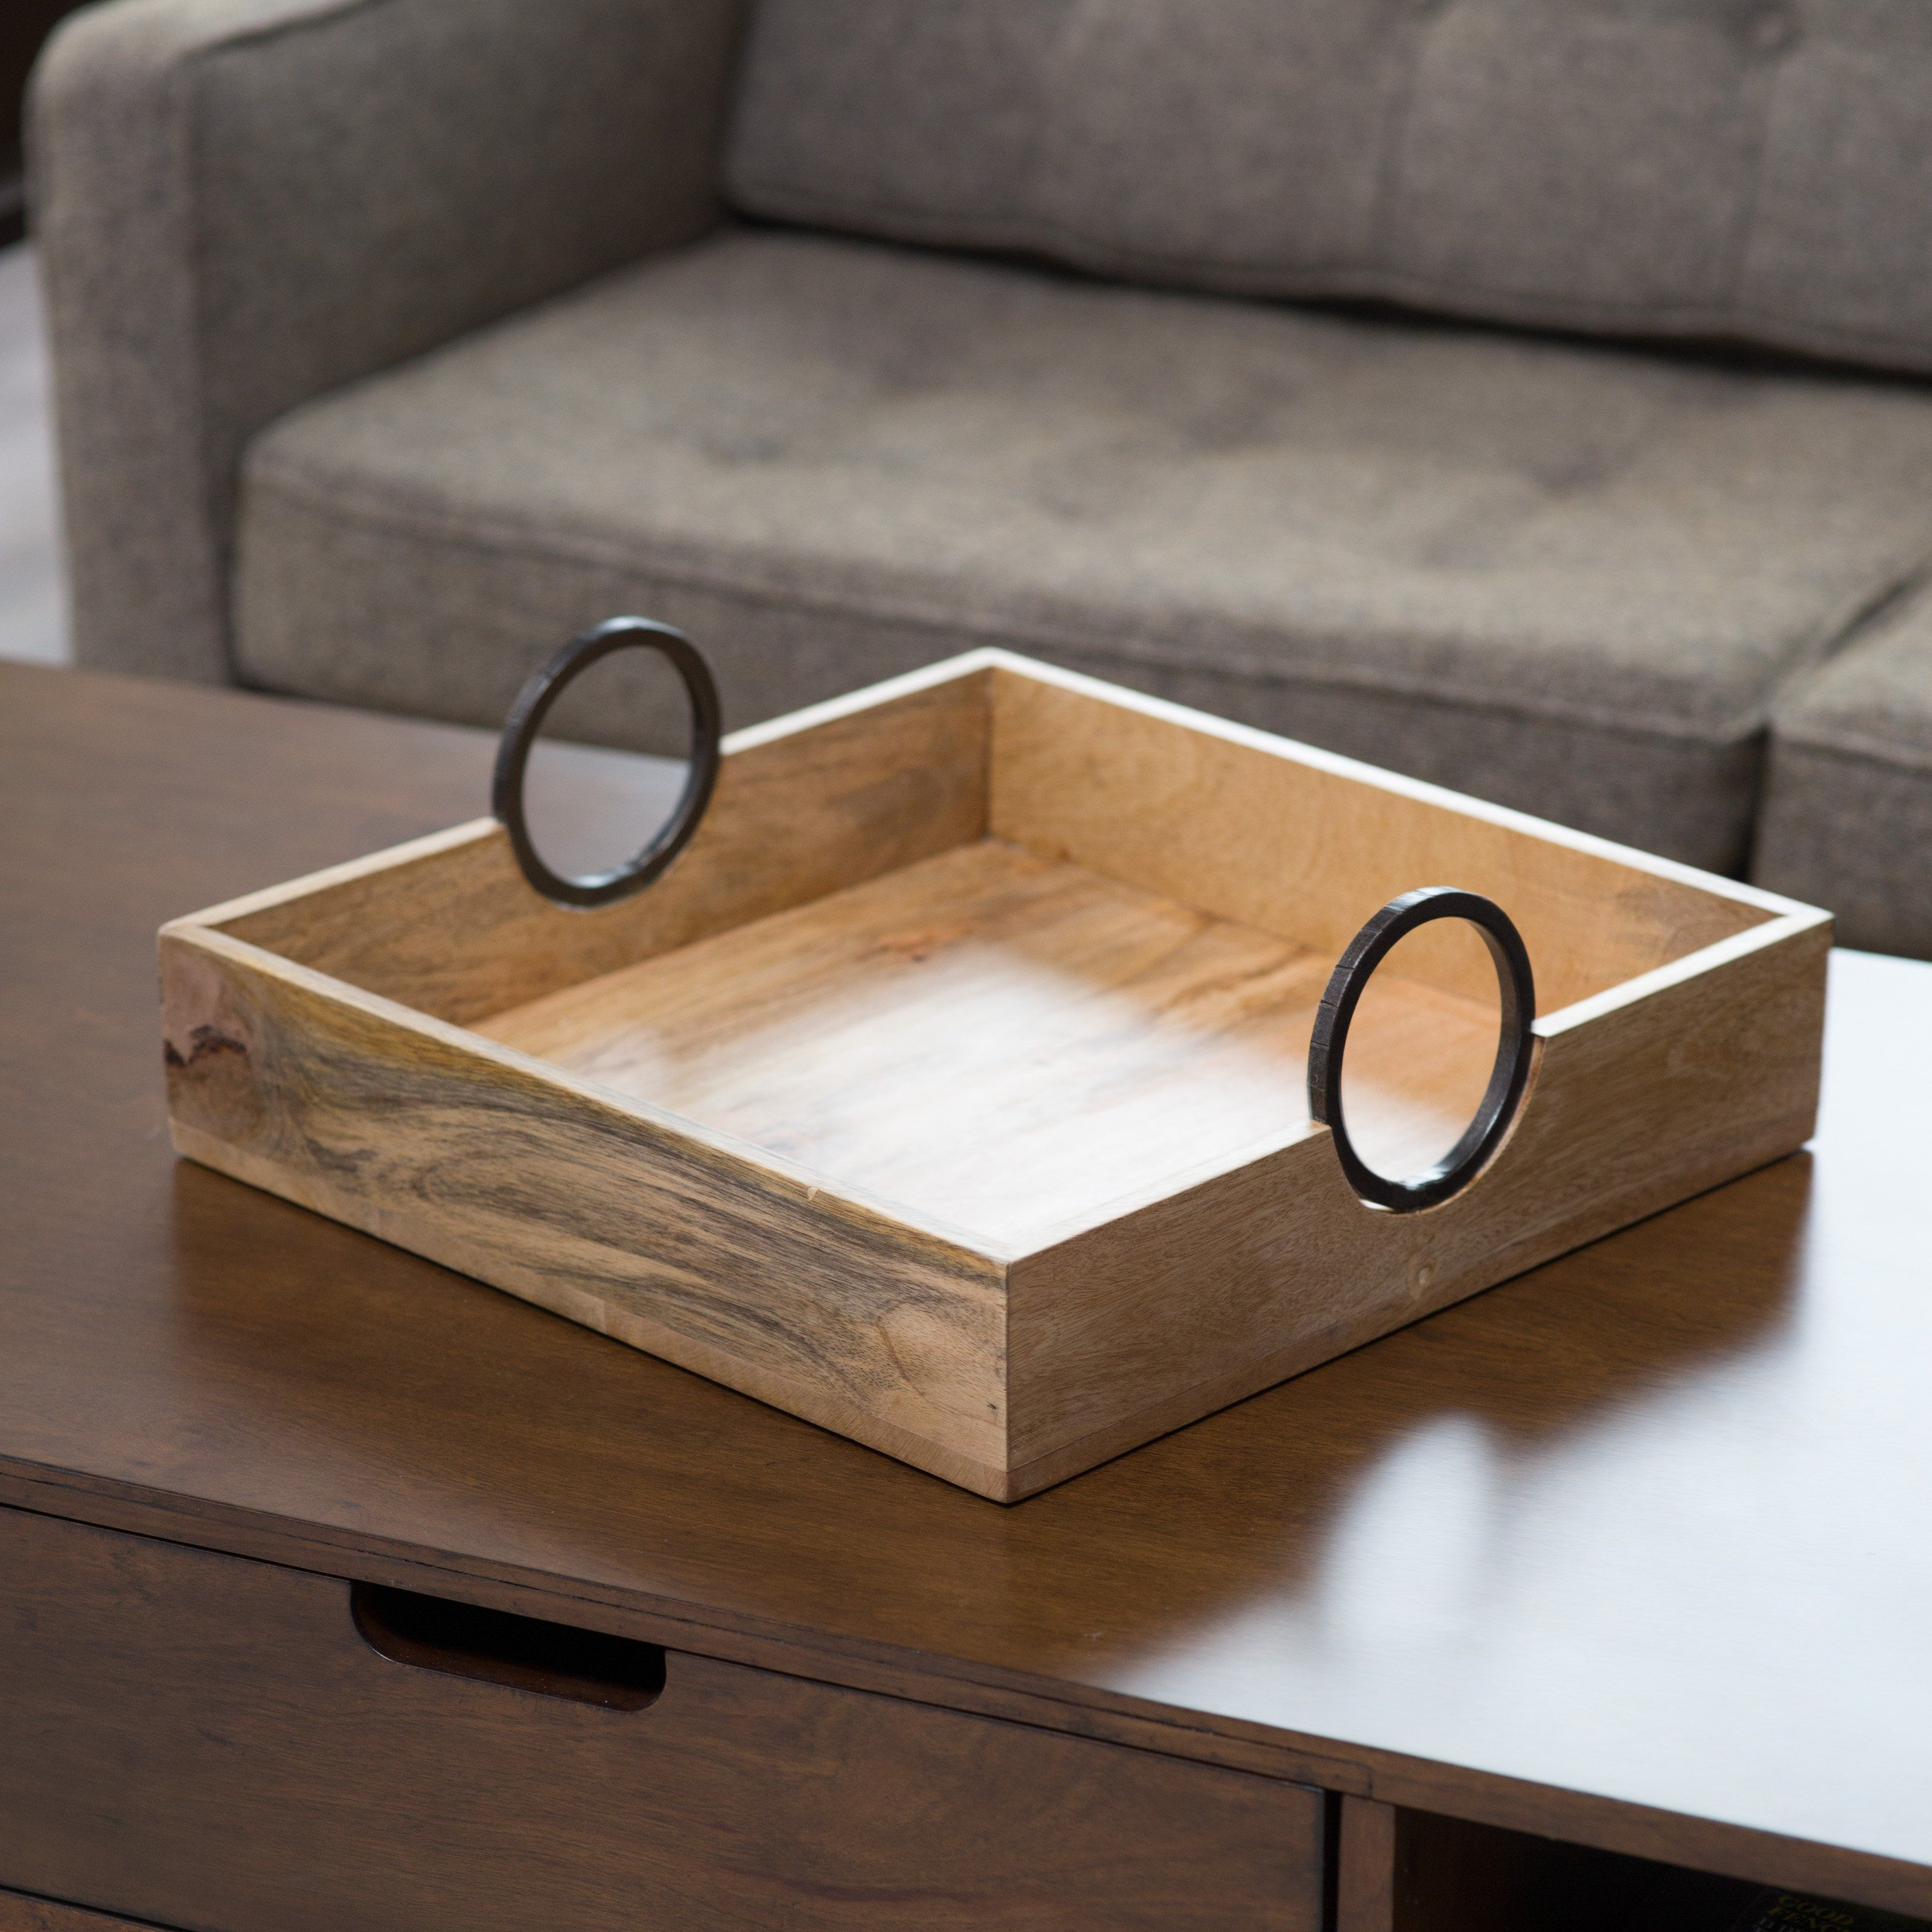 Cutler Bay Wood Serving Tray With Metal Handles From